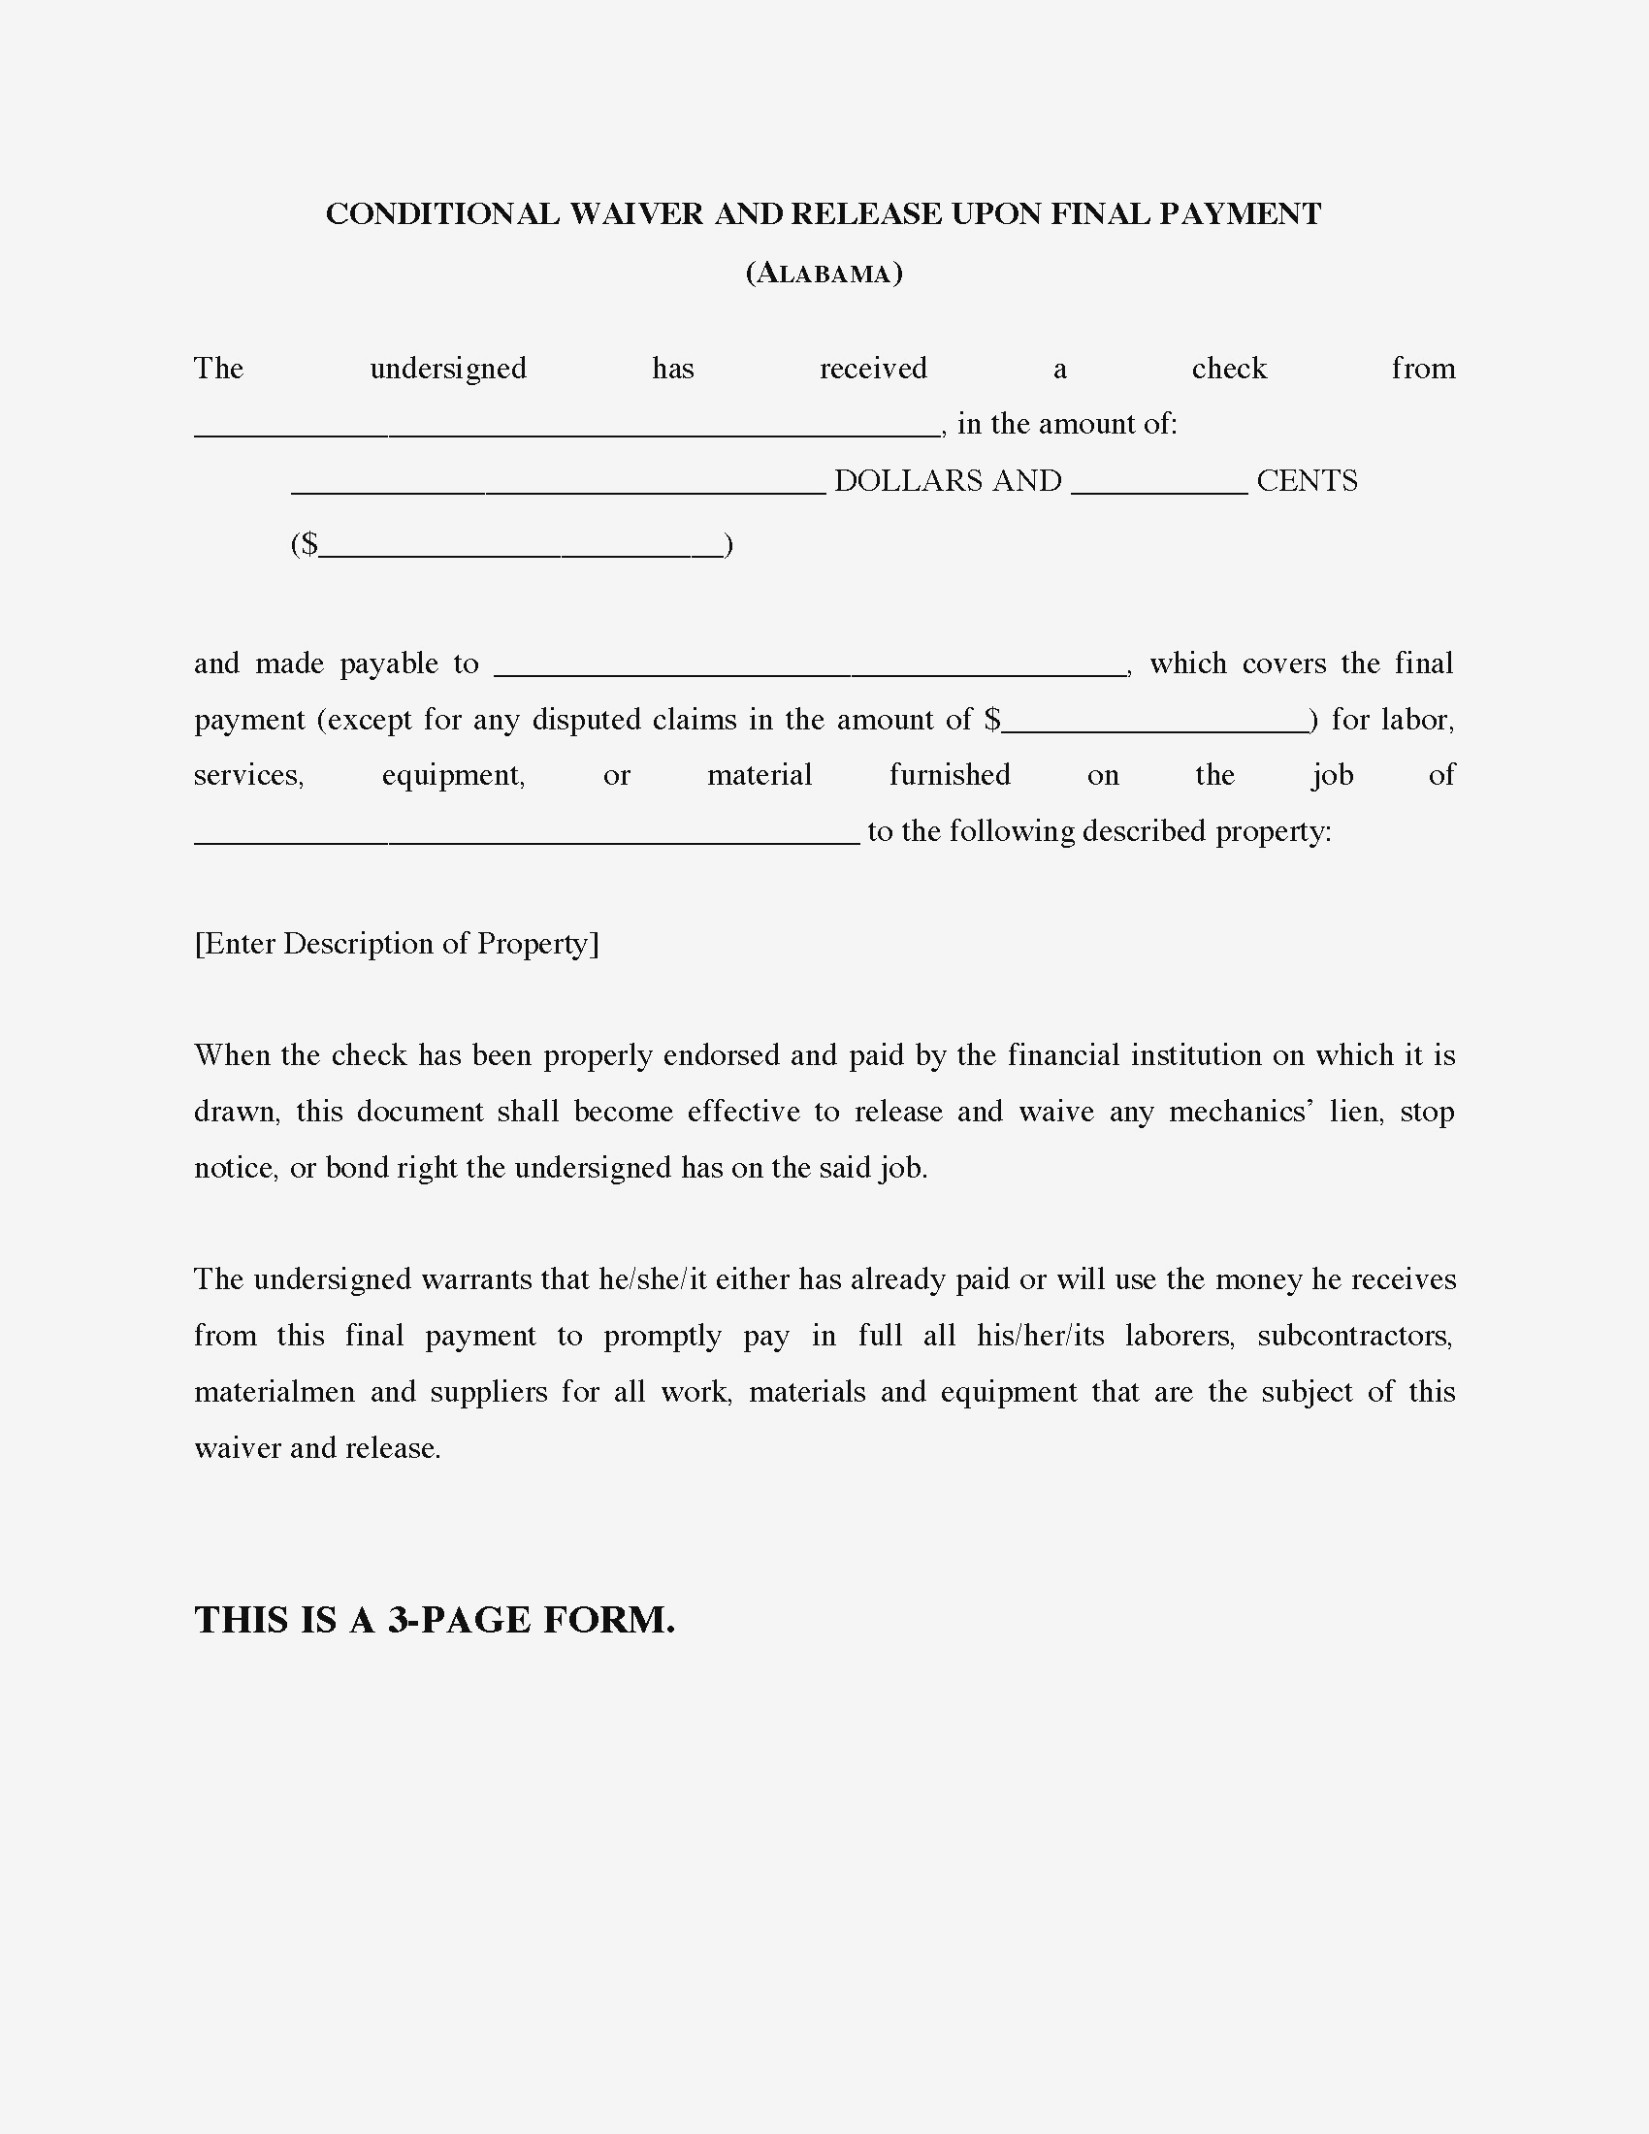 Waiver And Release Of Lien Upon Final Payment Form